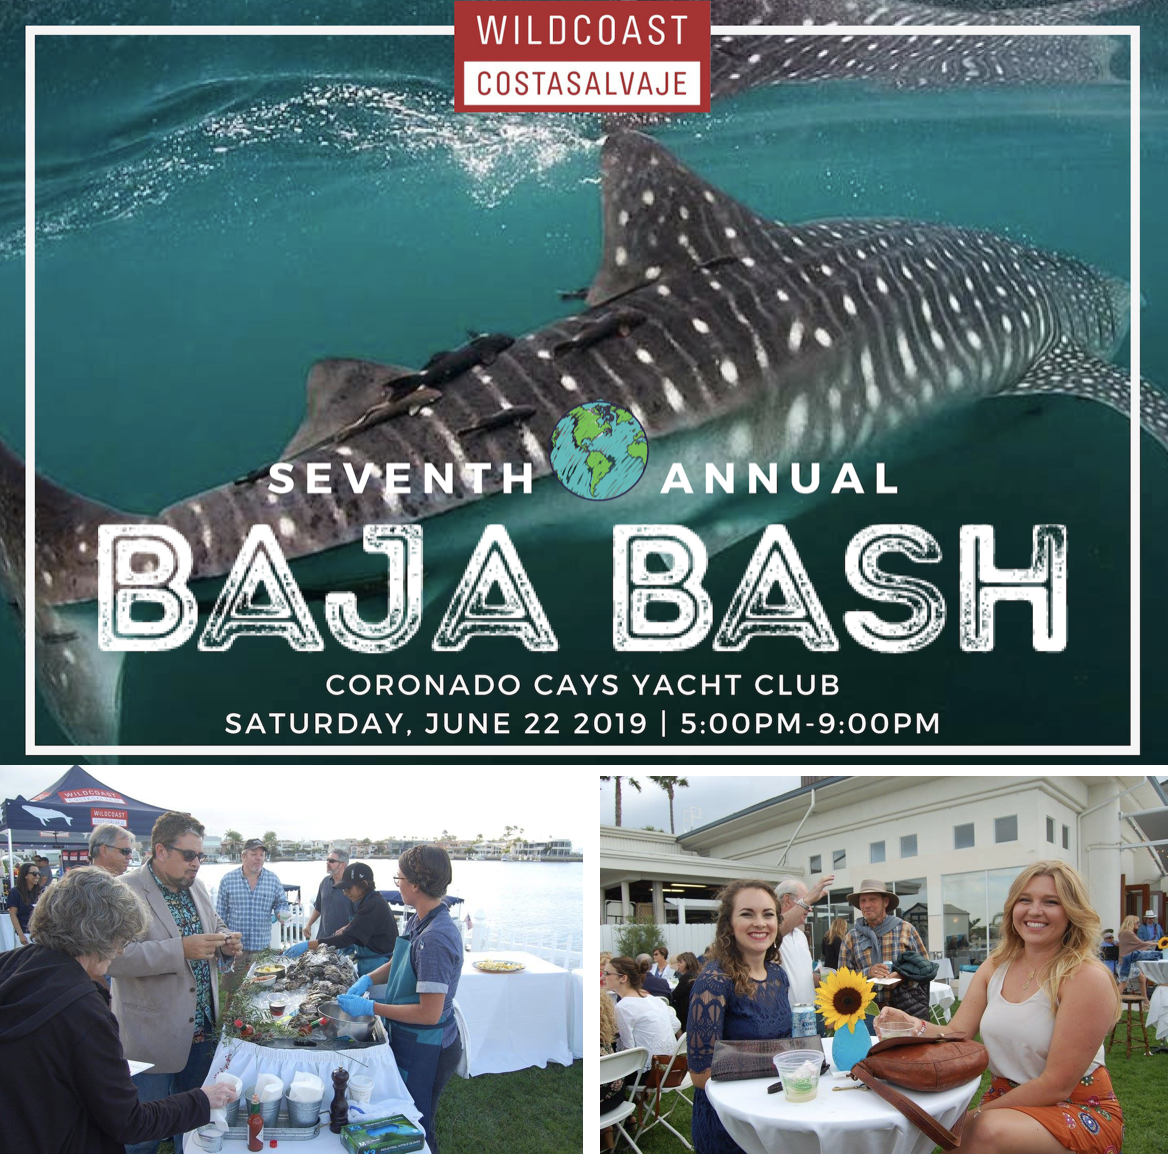 Support A Sustainable Coastline & Enjoy Delicious Cuisine At Wildcoast's Baja Bash - June 22!